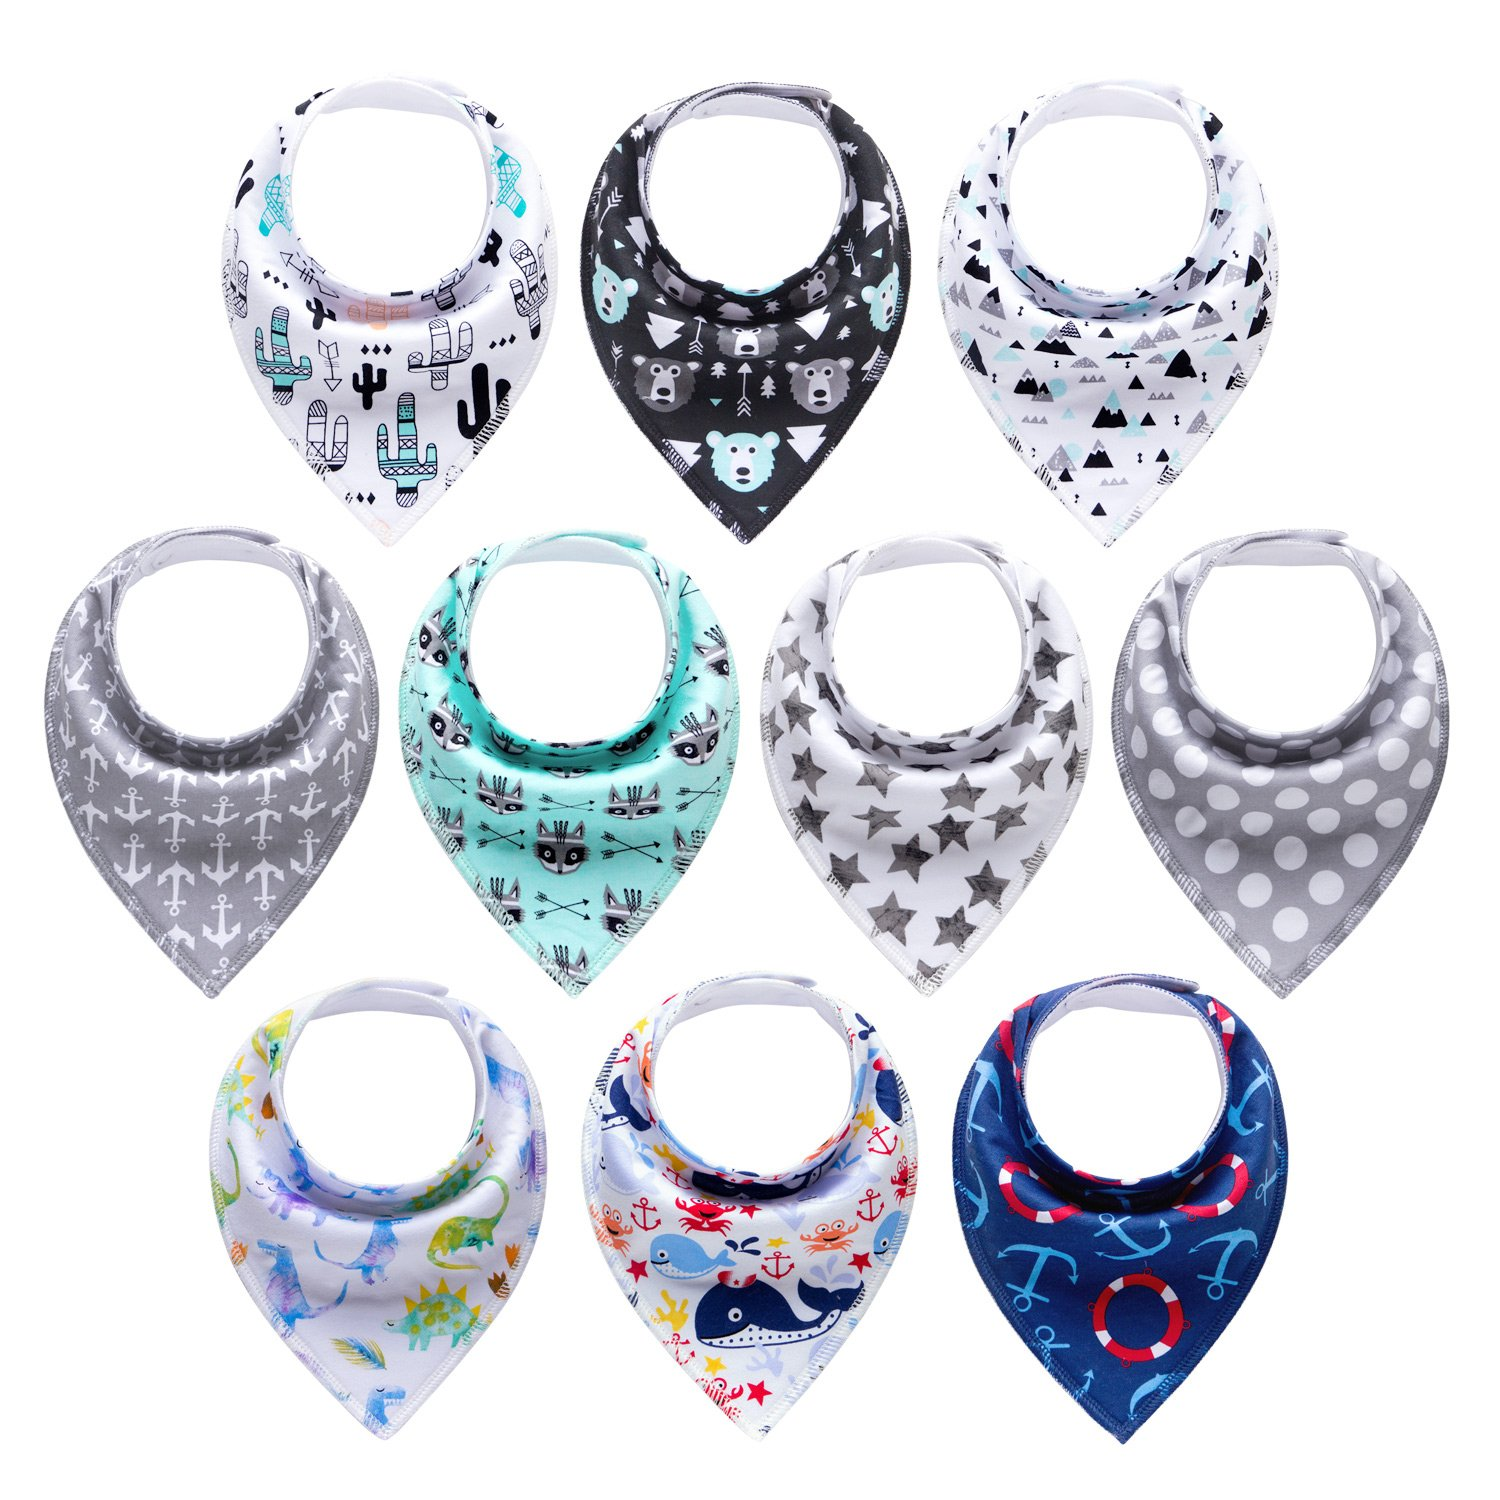 10-Pack Baby Boys Bandana Drool Bibs for Drooling and Teething by MiiYoung